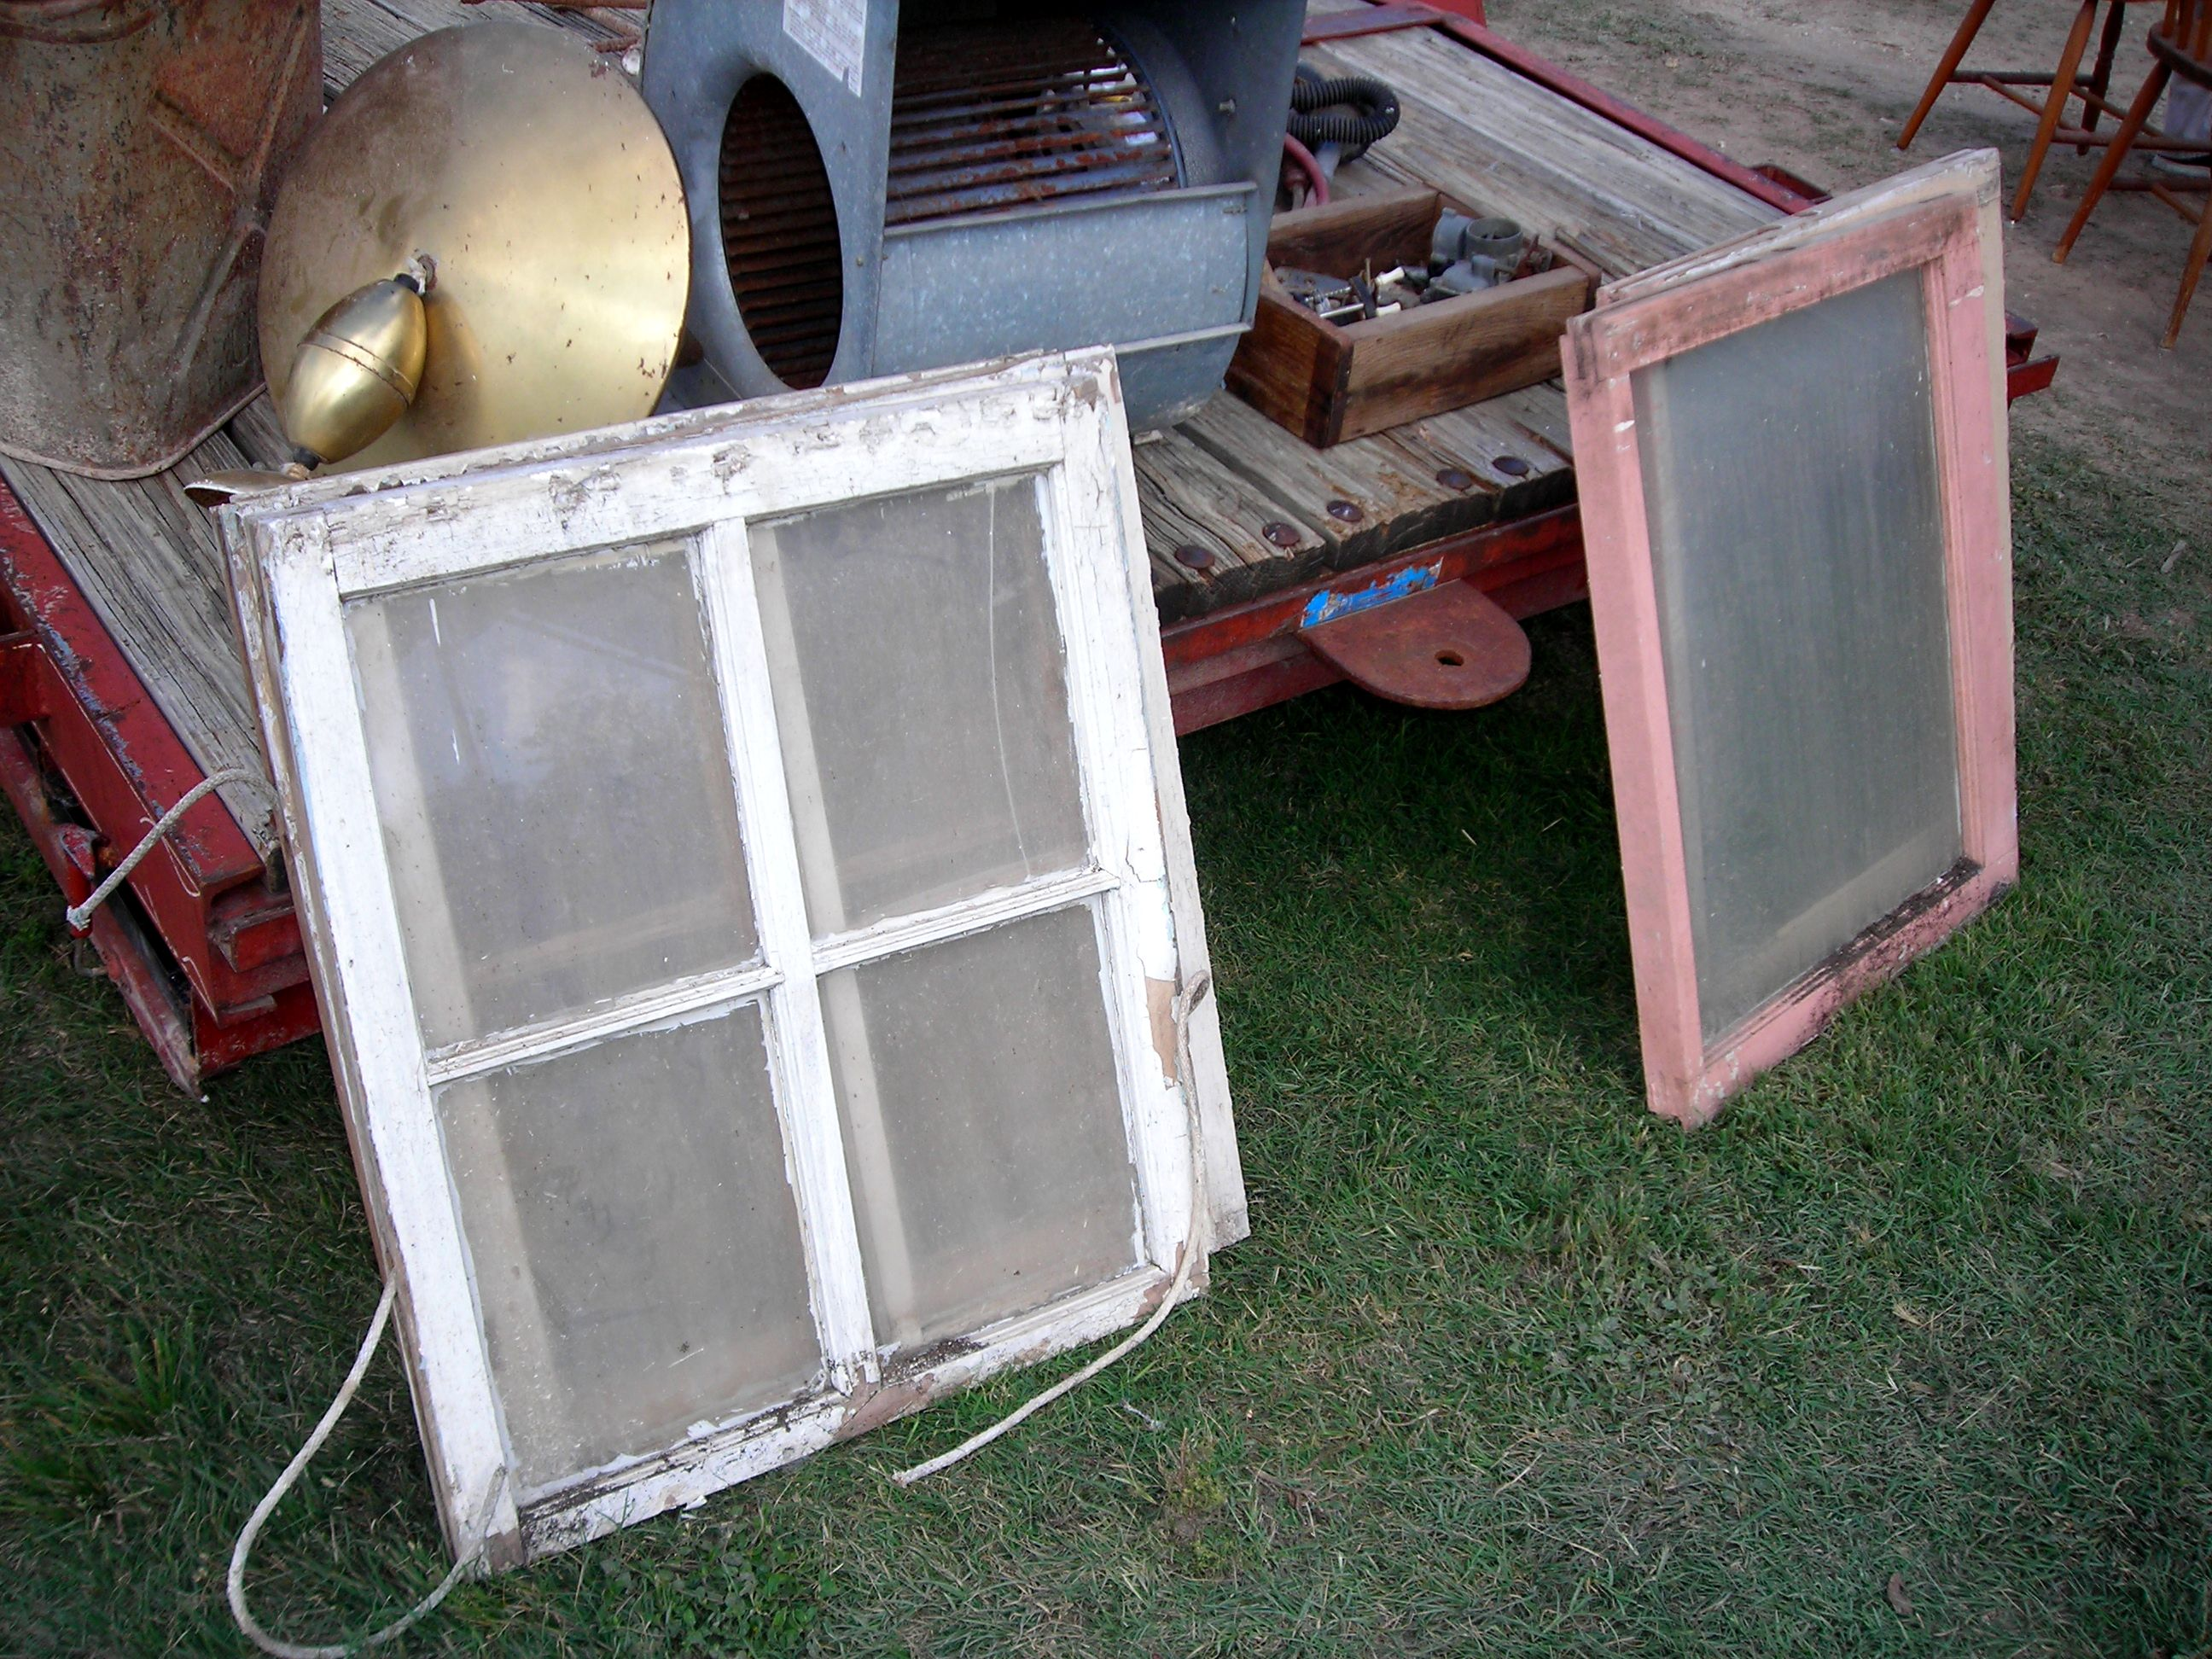 windows that used to be in that house. five of 'em in all. a buck each. have i died and gone to heaven?!?!?!